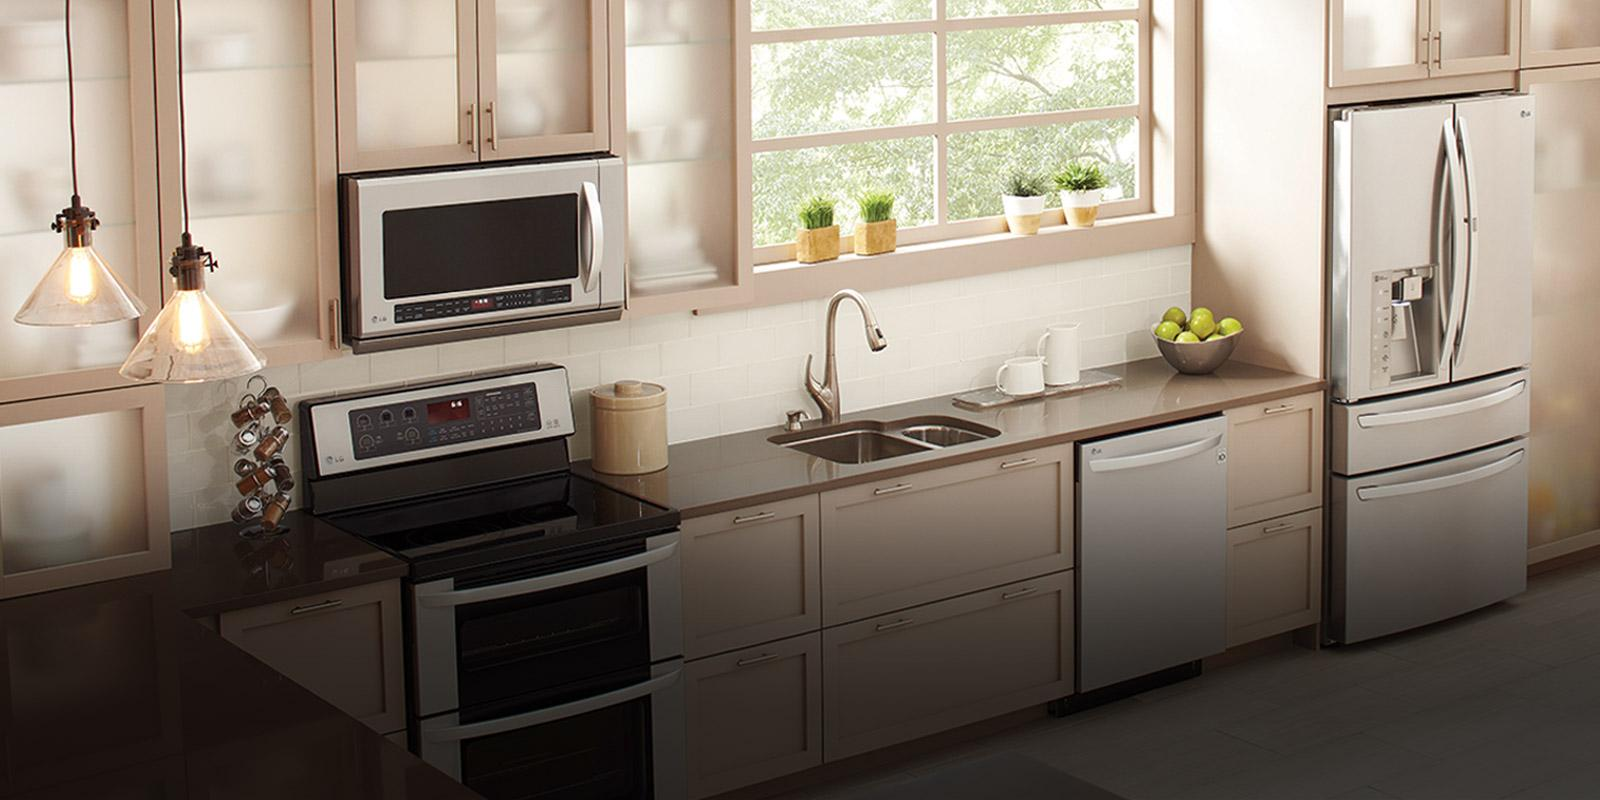 Bright Modern Kitchen Featuring An Lg Over The Range Microwave Oven